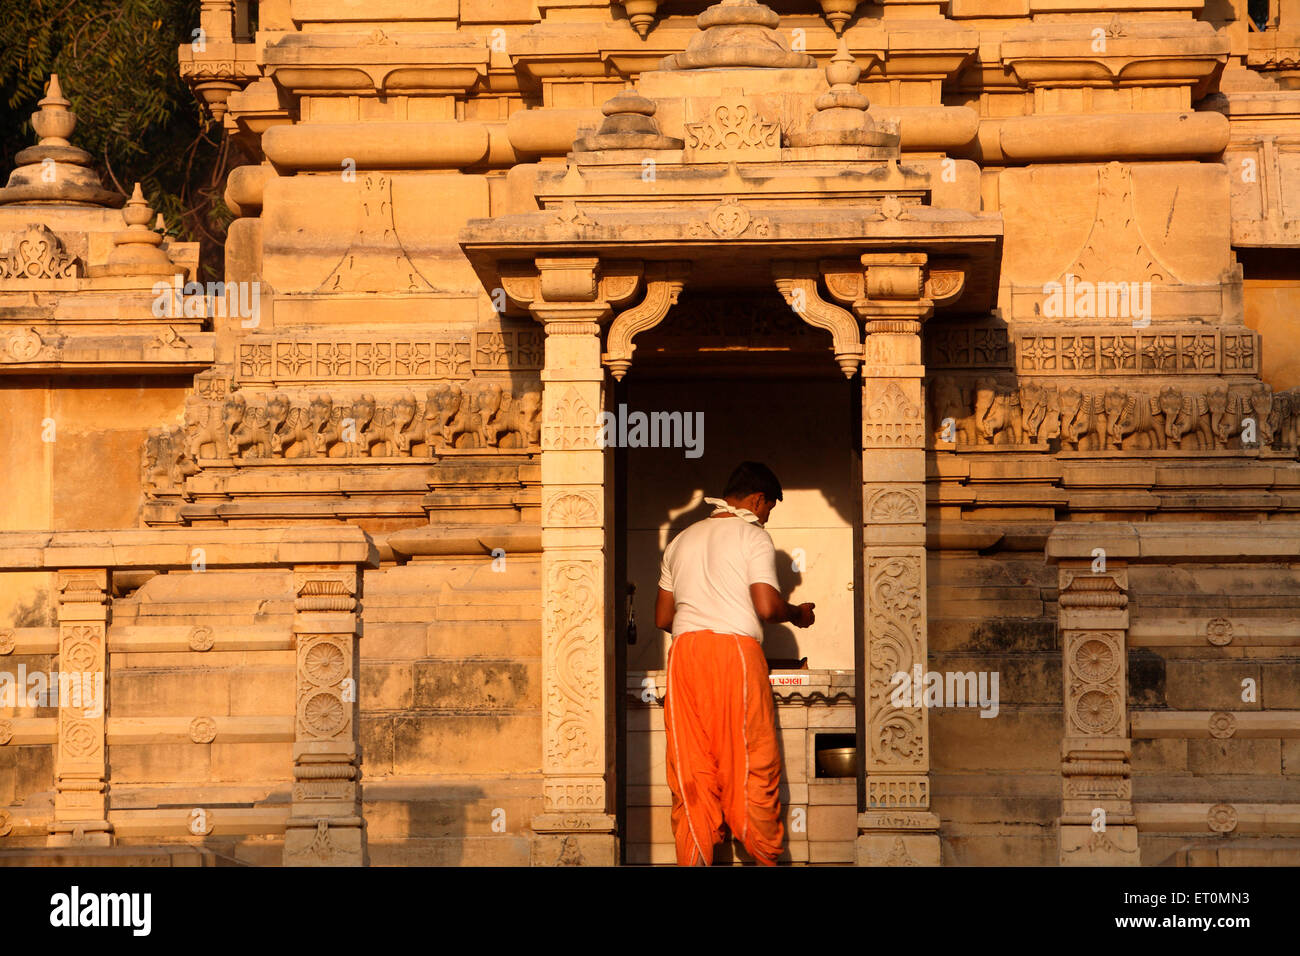 Hatheesingh temple built in 1850 situated outside Delhi Gate in Ahmedabad ; Gujarat ;  India - Stock Image